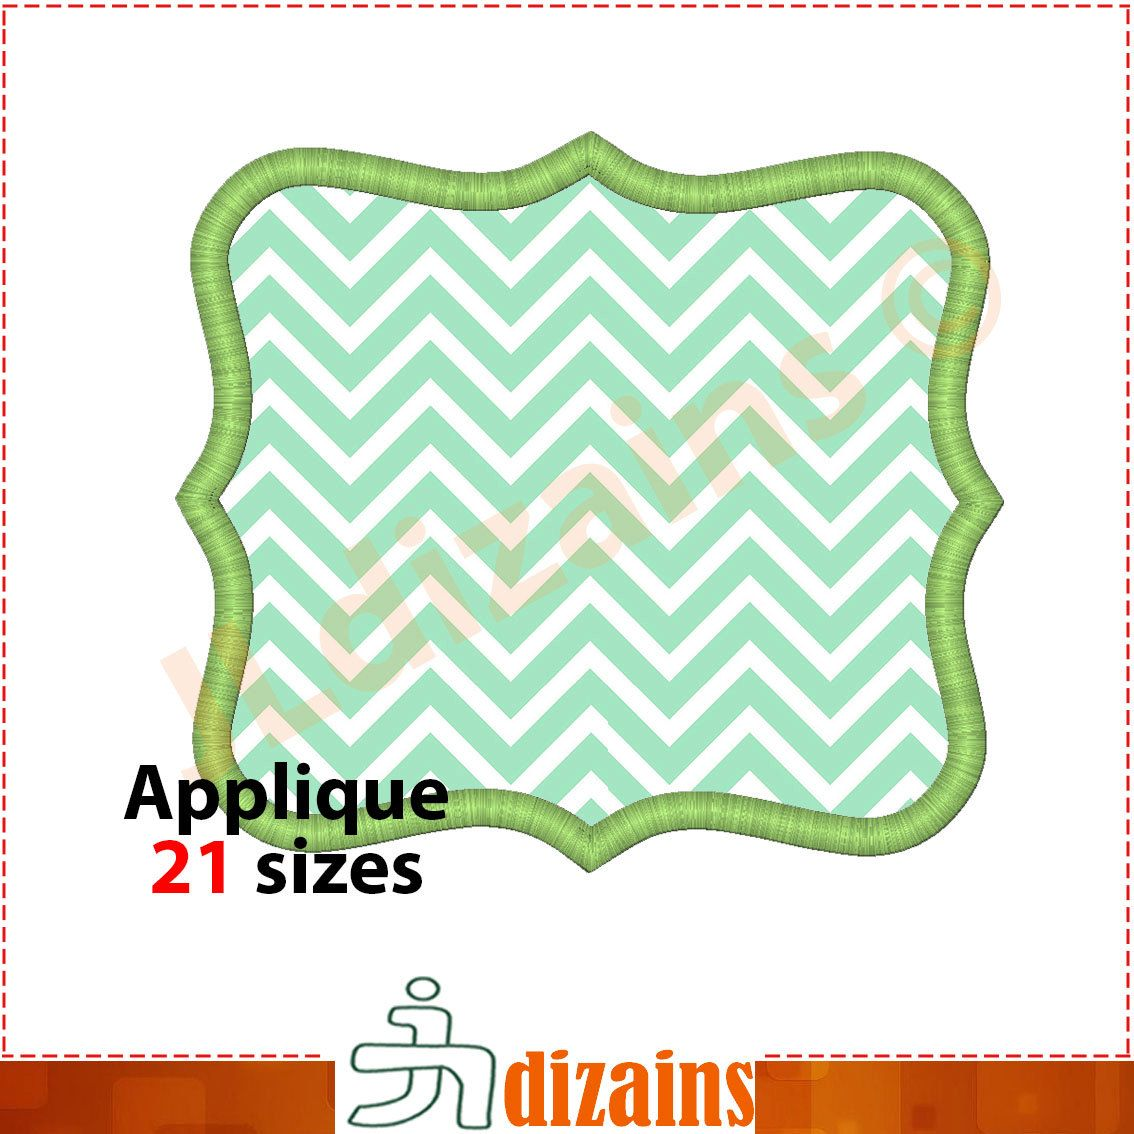 Frame Applique Design Embroidery pattern frame Embroidery applique